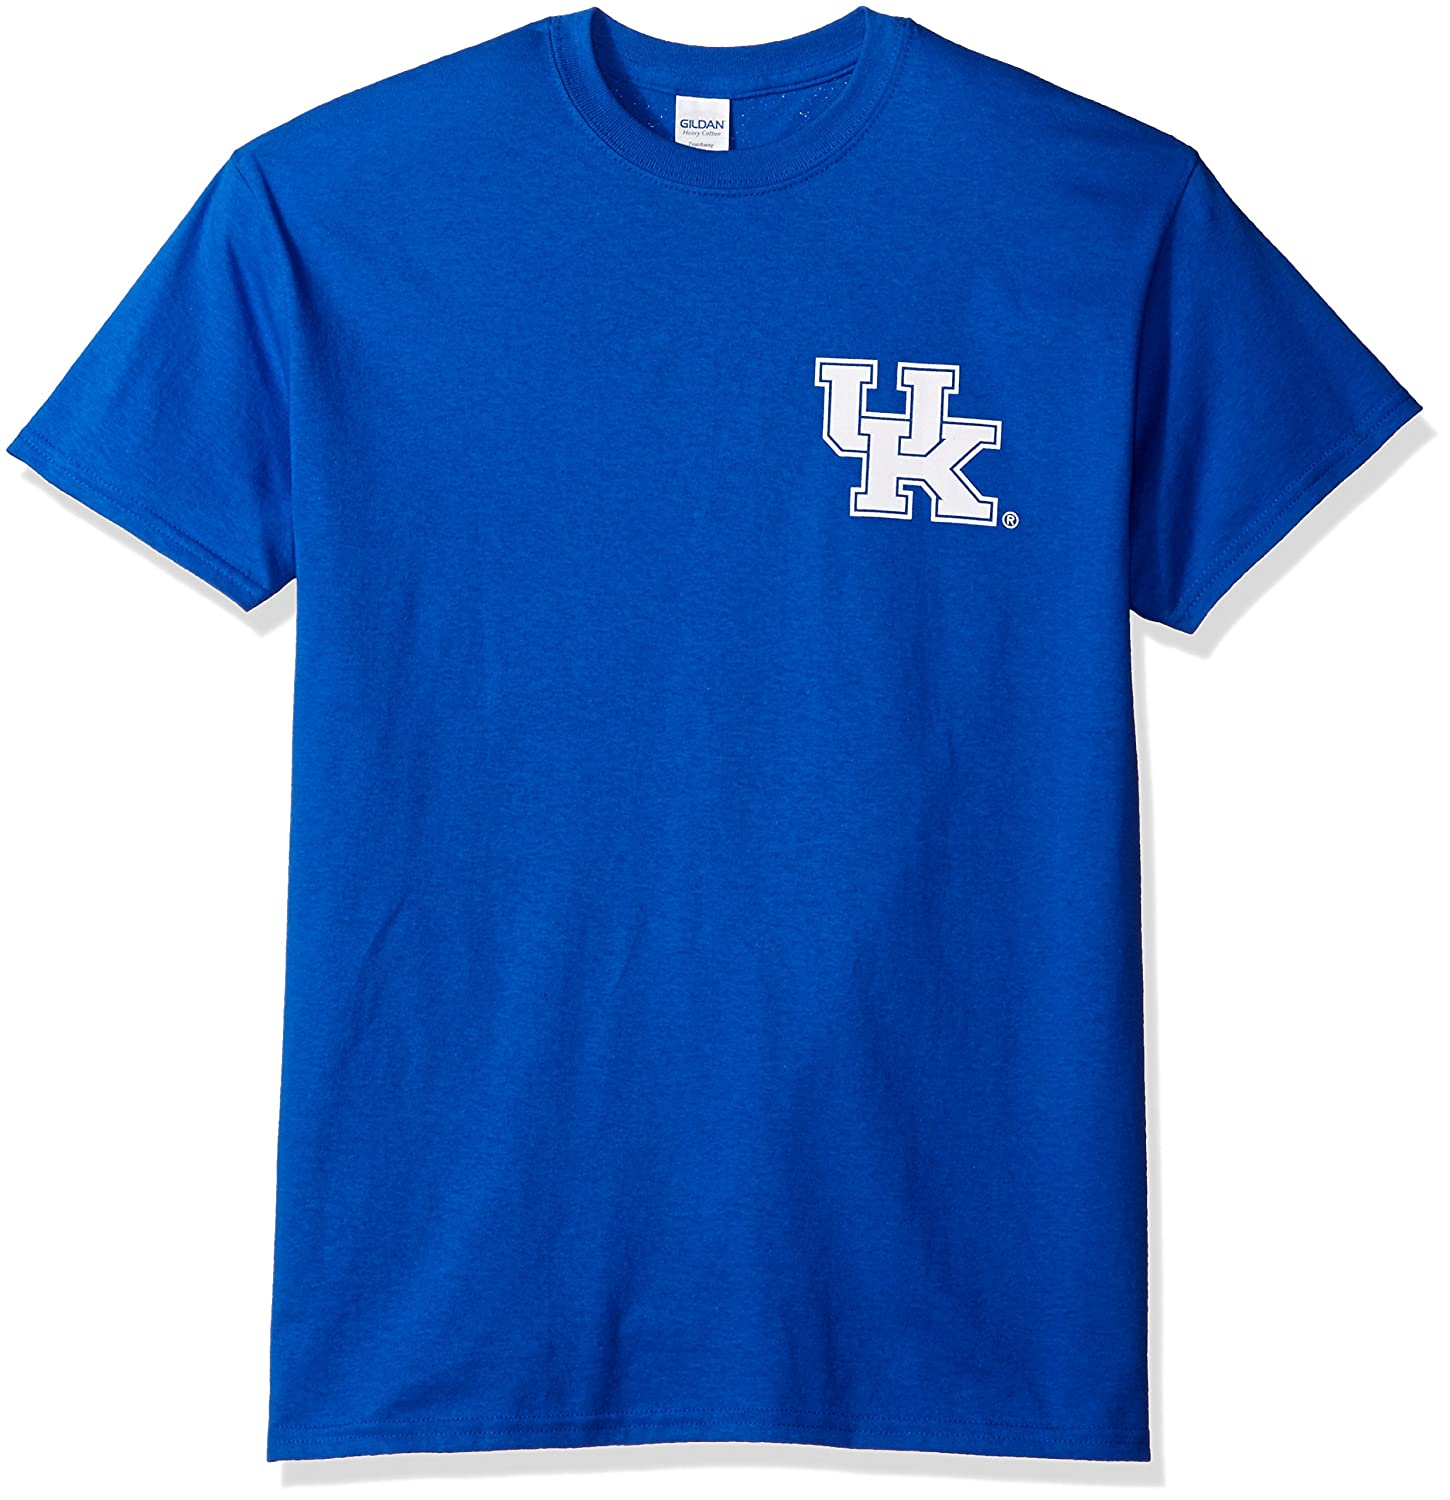 配送員設置 NCAAフローラル半袖 3L 3L Kentucky Wildcats Wildcats Kentucky B01MEDDO70, 機援隊:c6fdbfce --- a0267596.xsph.ru